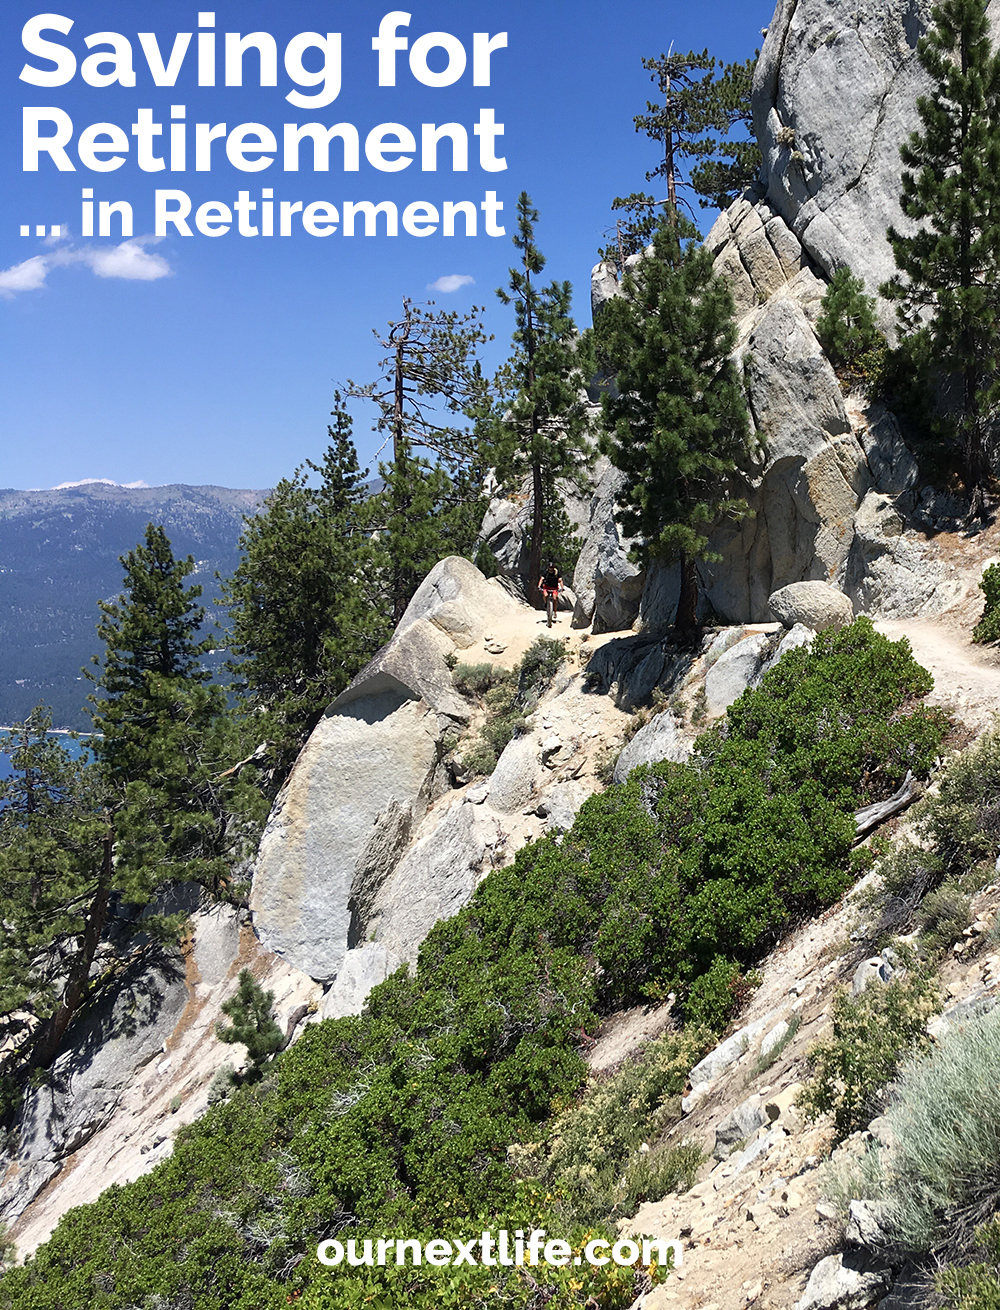 Saving for Retirement... in Retirement // OurNextLife.com // early retirement, financial independence, retirement savings, adventure, happiness, solo 401(k), traditional IRA, work in retirement